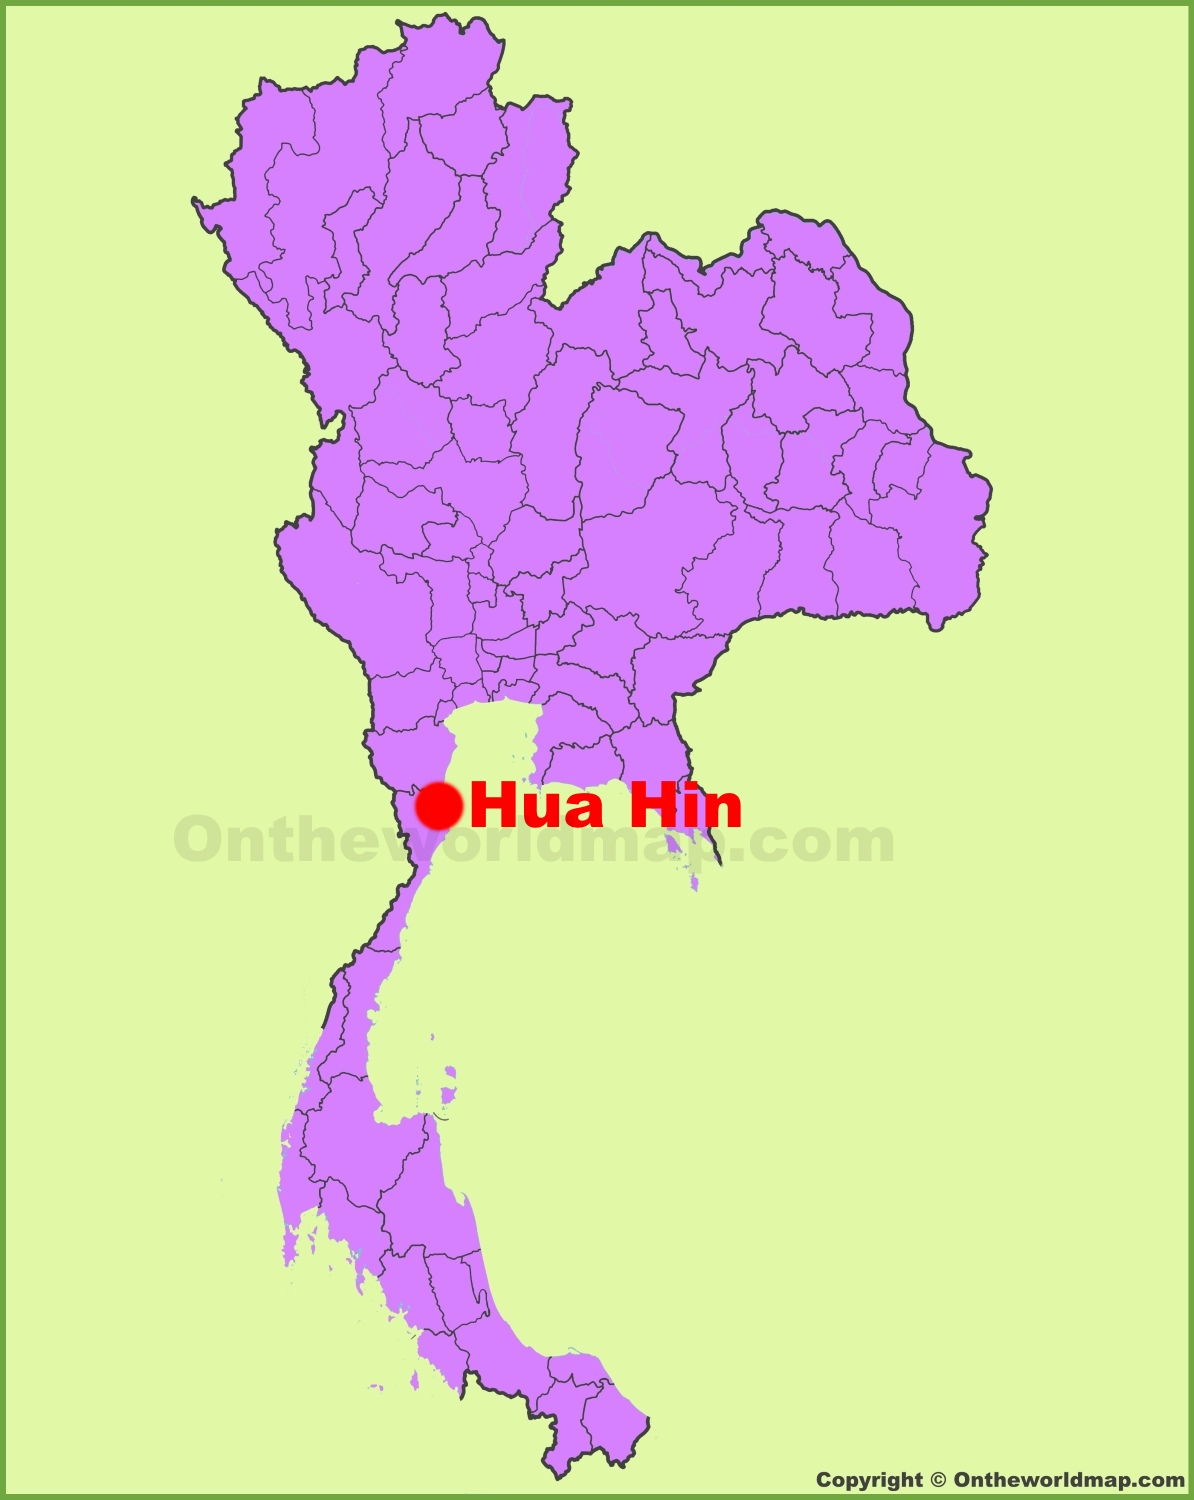 Hua Hin location on the Thailand Map Map Of Hua Hin Thailand on map of sydney australia, map of goa india, night market hua hin thailand, map of panama city florida, map of queenstown new zealand, map of singapore, map of wildwood new jersey, map hua hin beach, map of christchurch new zealand, map of jaco costa rica, map of melbourne australia, map of paris france, map of auckland new zealand, map of queensland australia, map of sun valley idaho, map of nantucket island massachusetts, map of cabo san lucas mexico, map of tokyo japan, map of provincetown massachusetts, hotel in hua hin thailand,